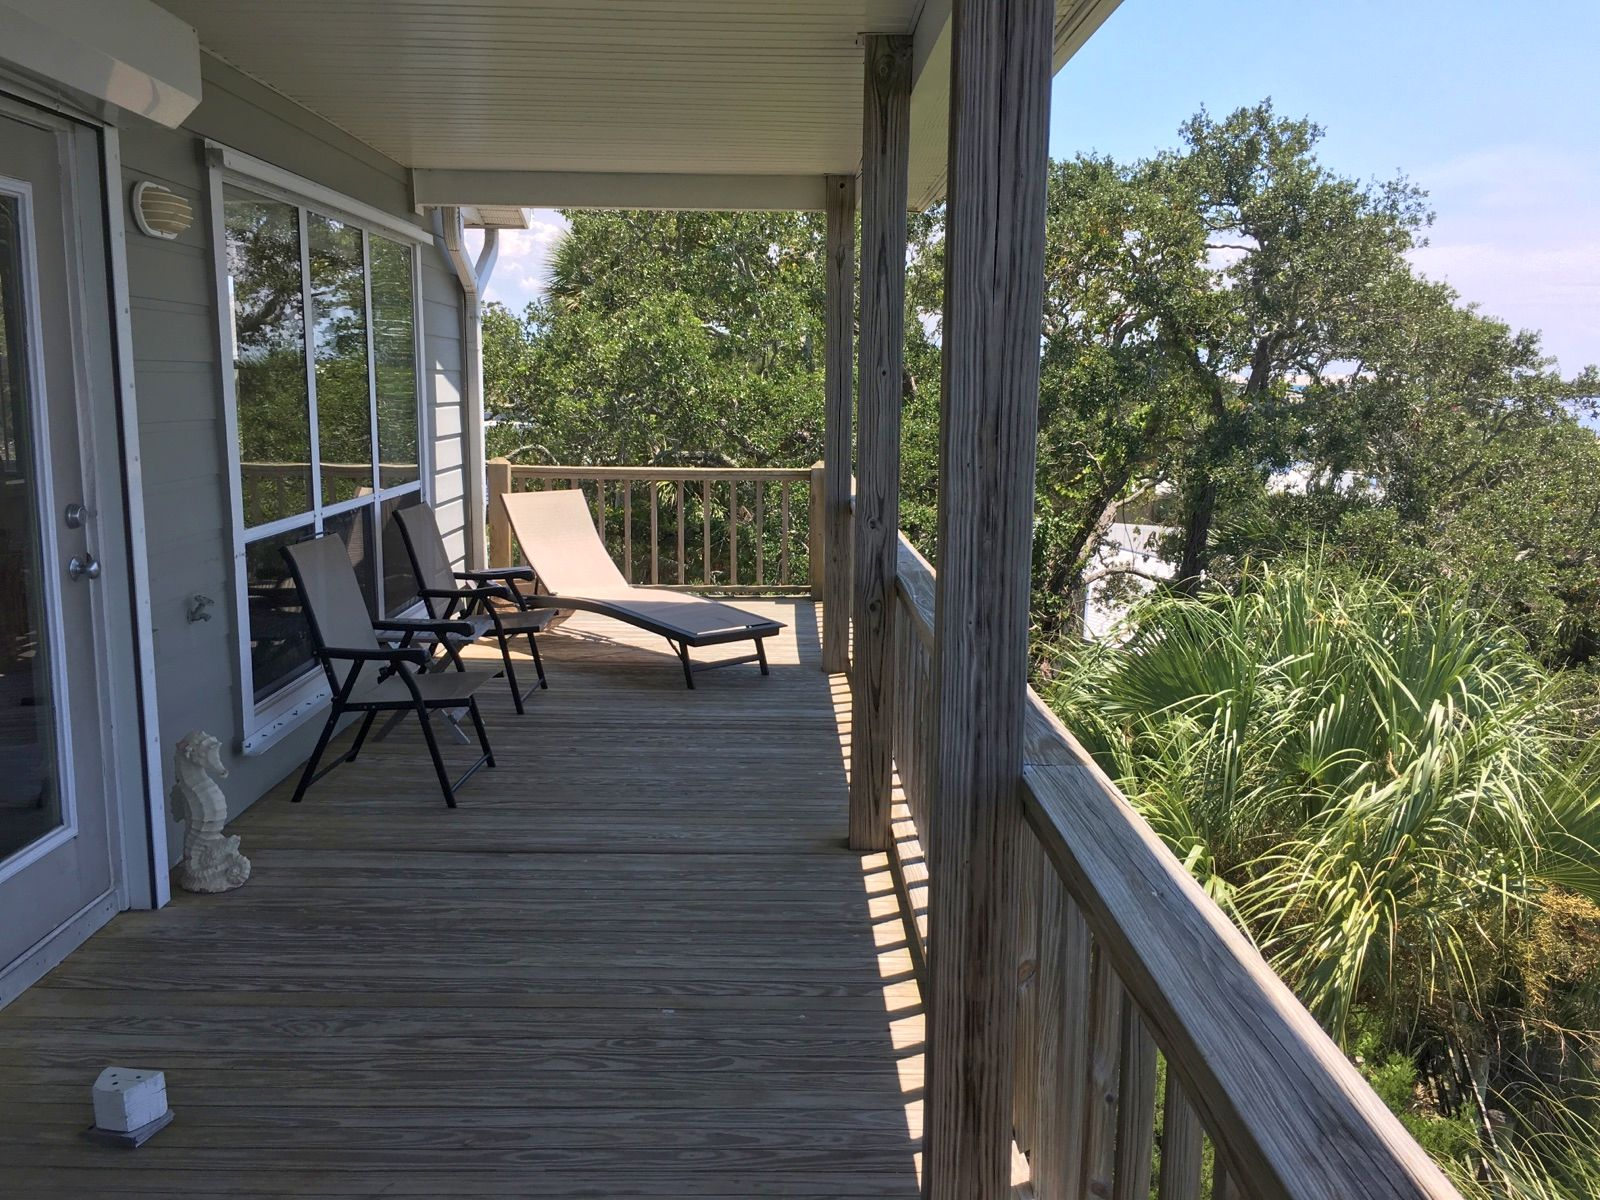 Gulf Front Condo Rental in Cedar Key FL